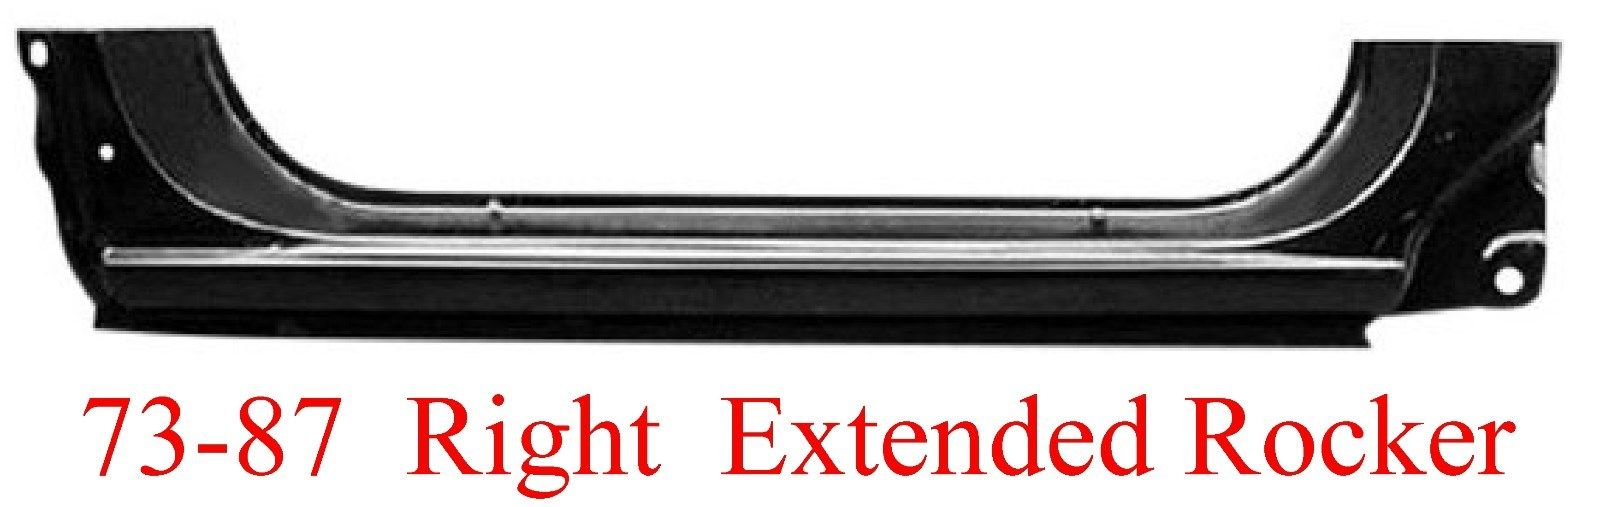 73-87-91 Chevy & GMC Right Extended Rocker Panel